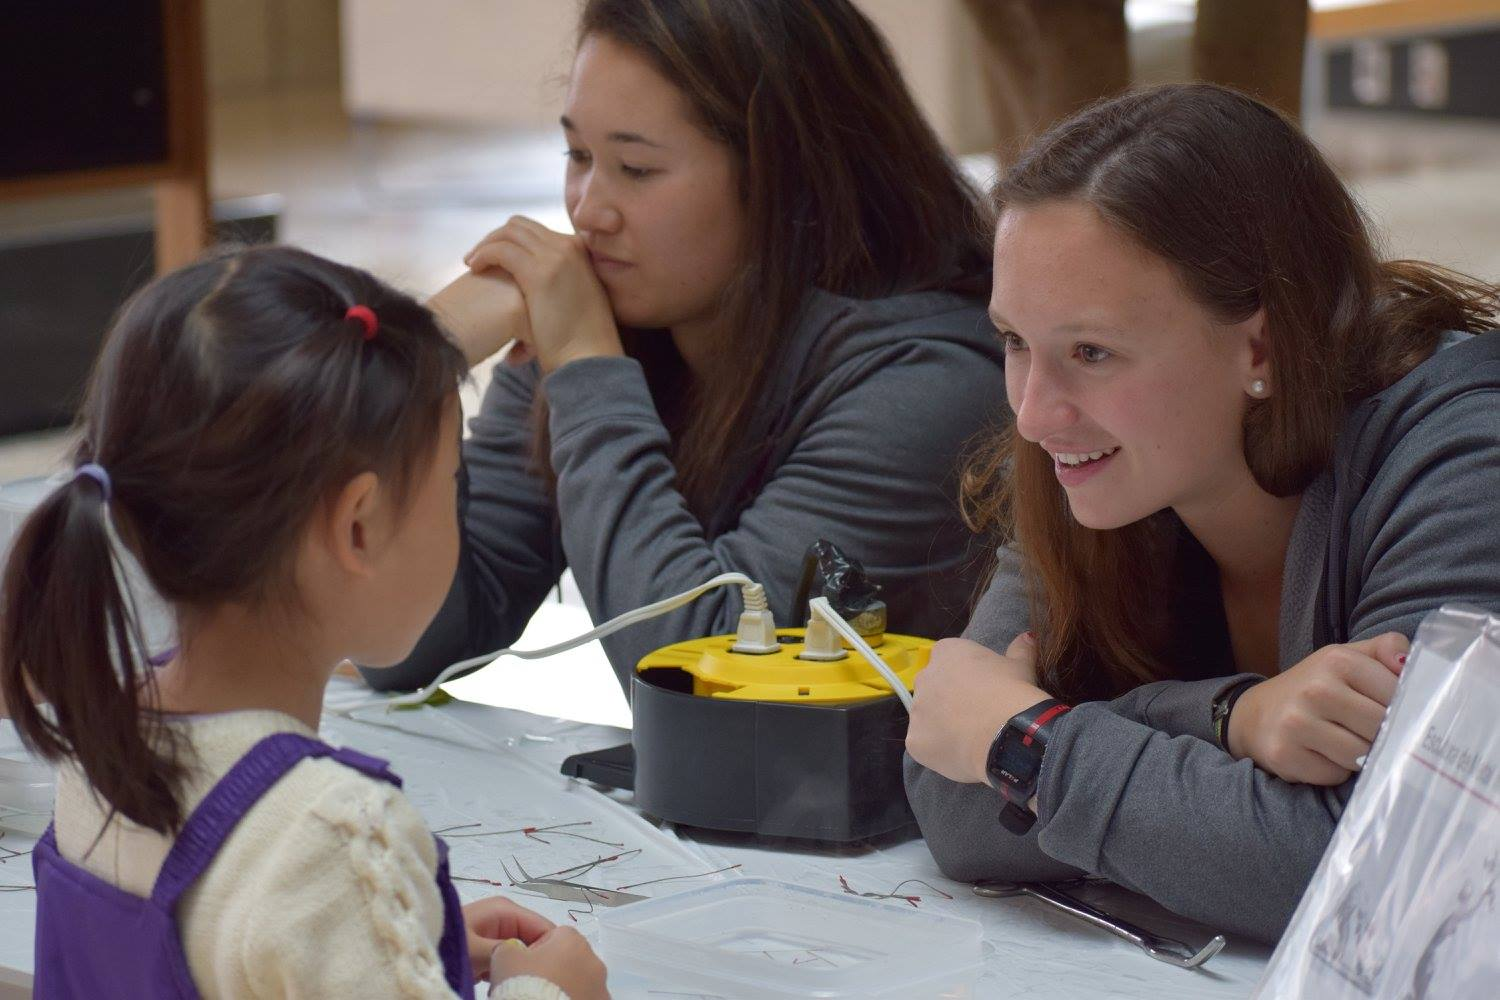 a volunteer interacts with a visitor at an outreach event